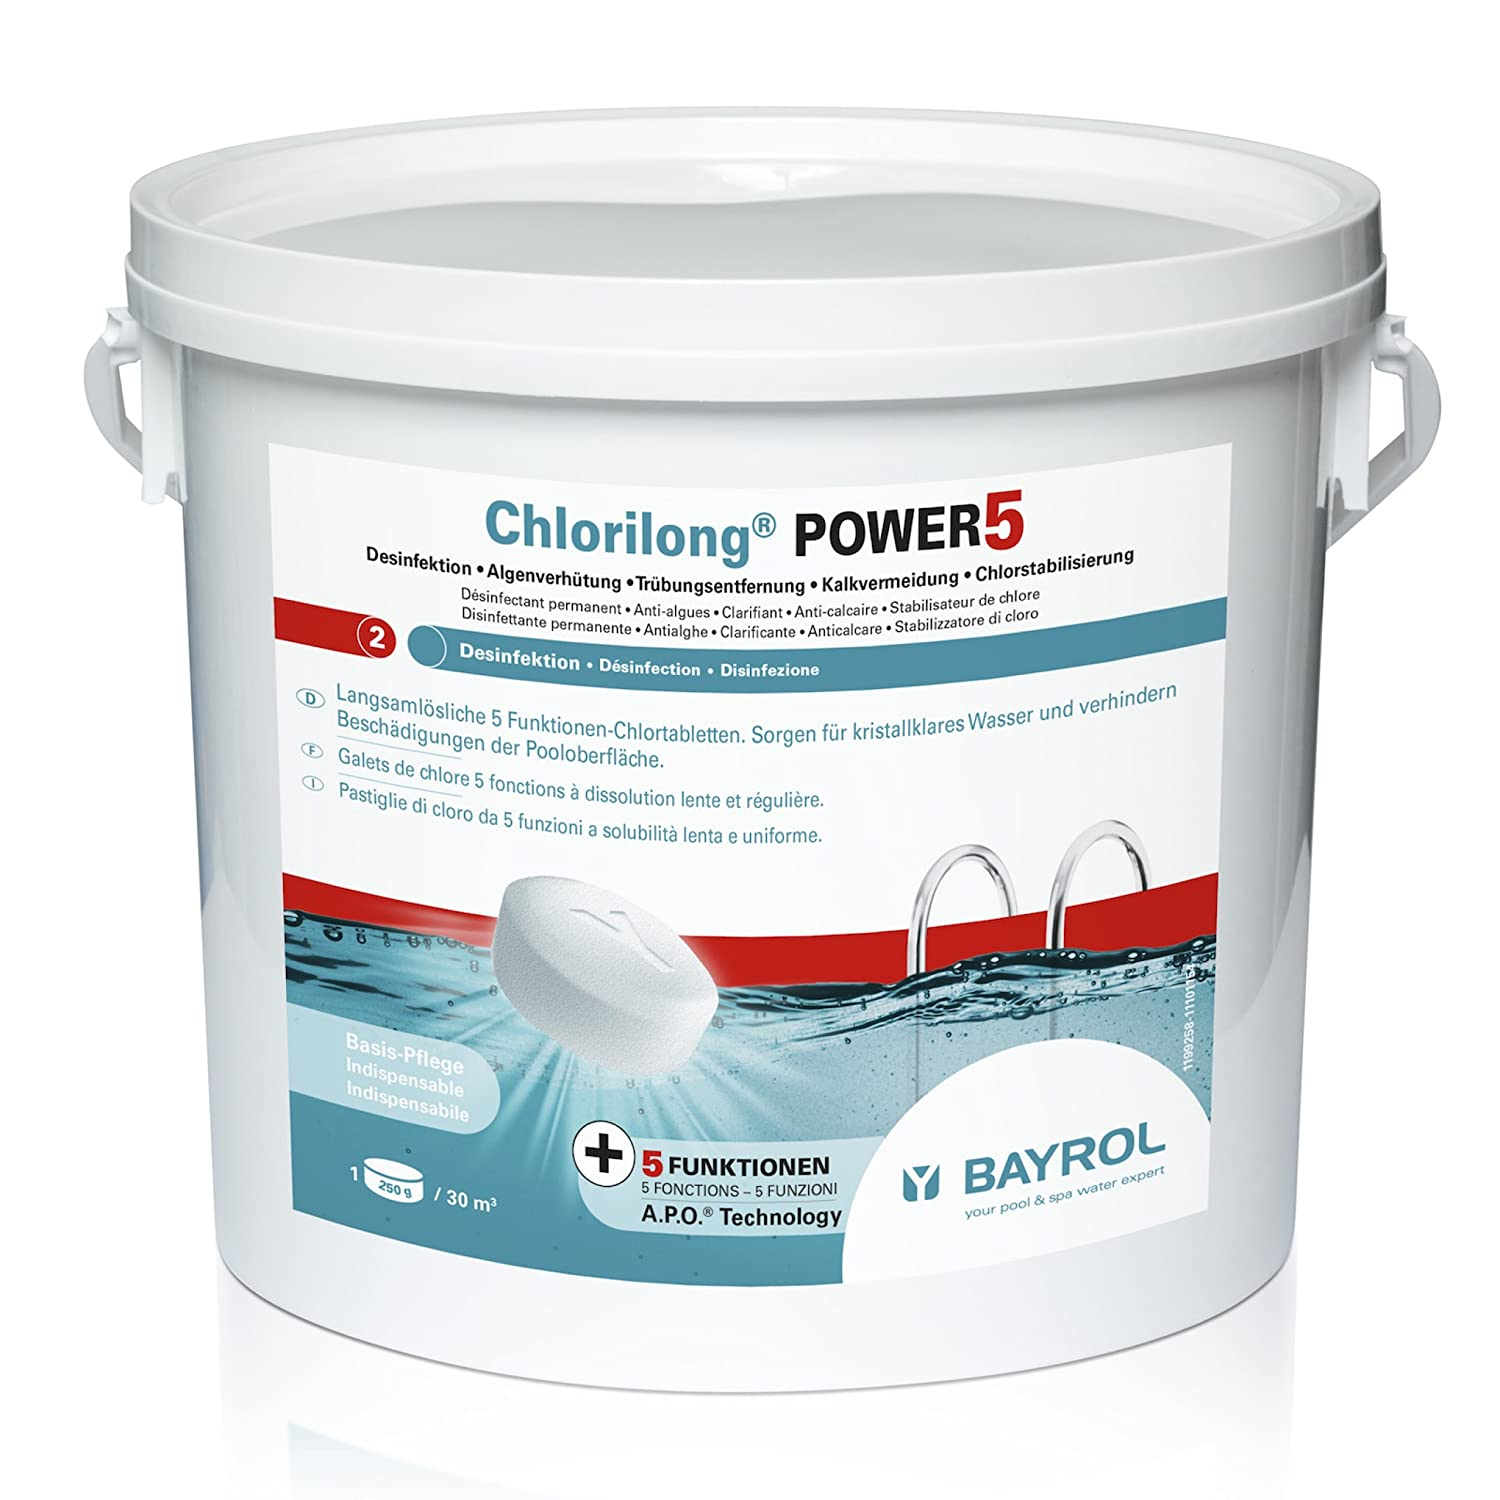 Bayrol Chlorilong Power 250 g 5 Multi-functional Tablet Chlorine Disinfectant 5 kg